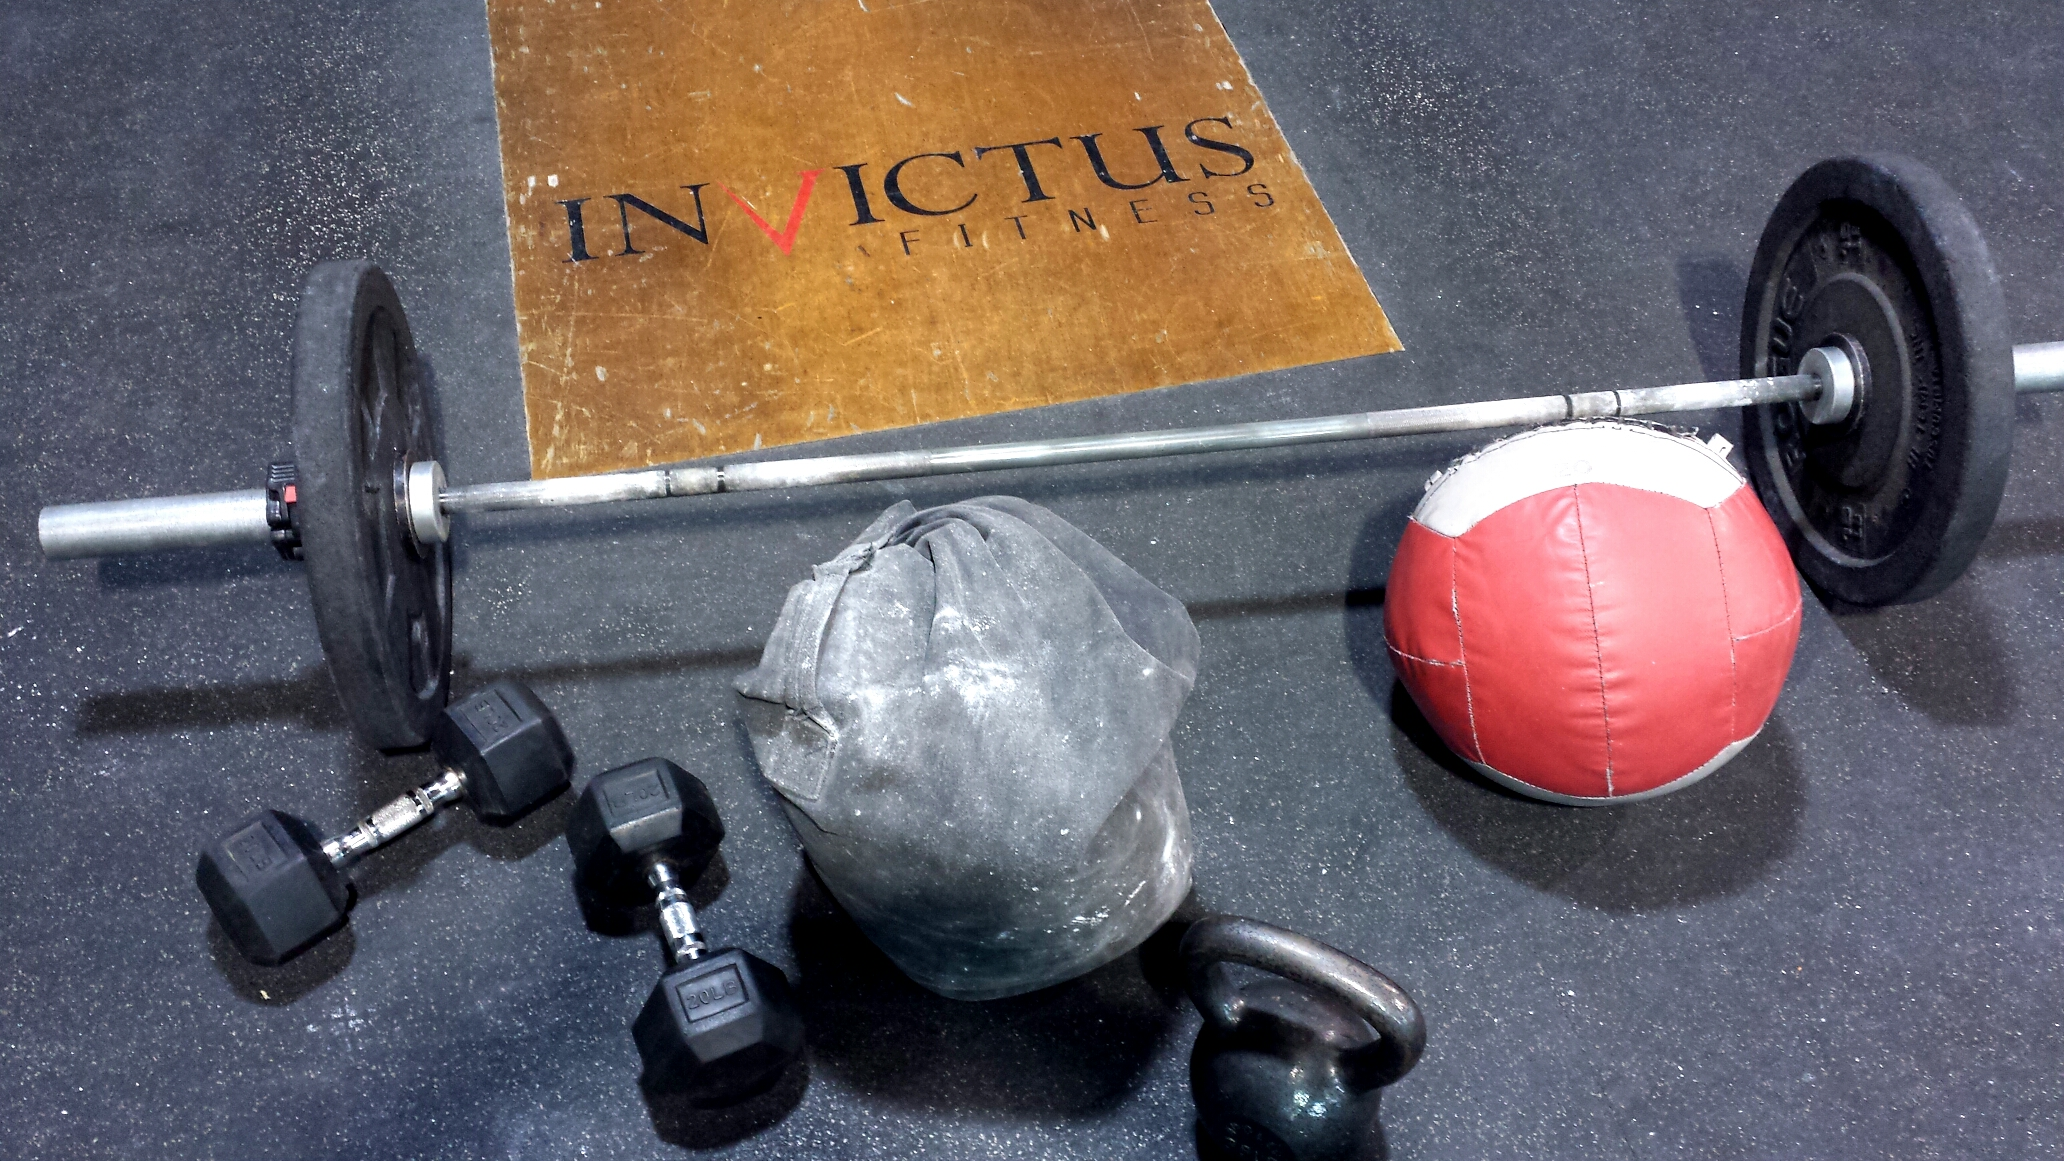 Variance in Programming - Invictus Fitness